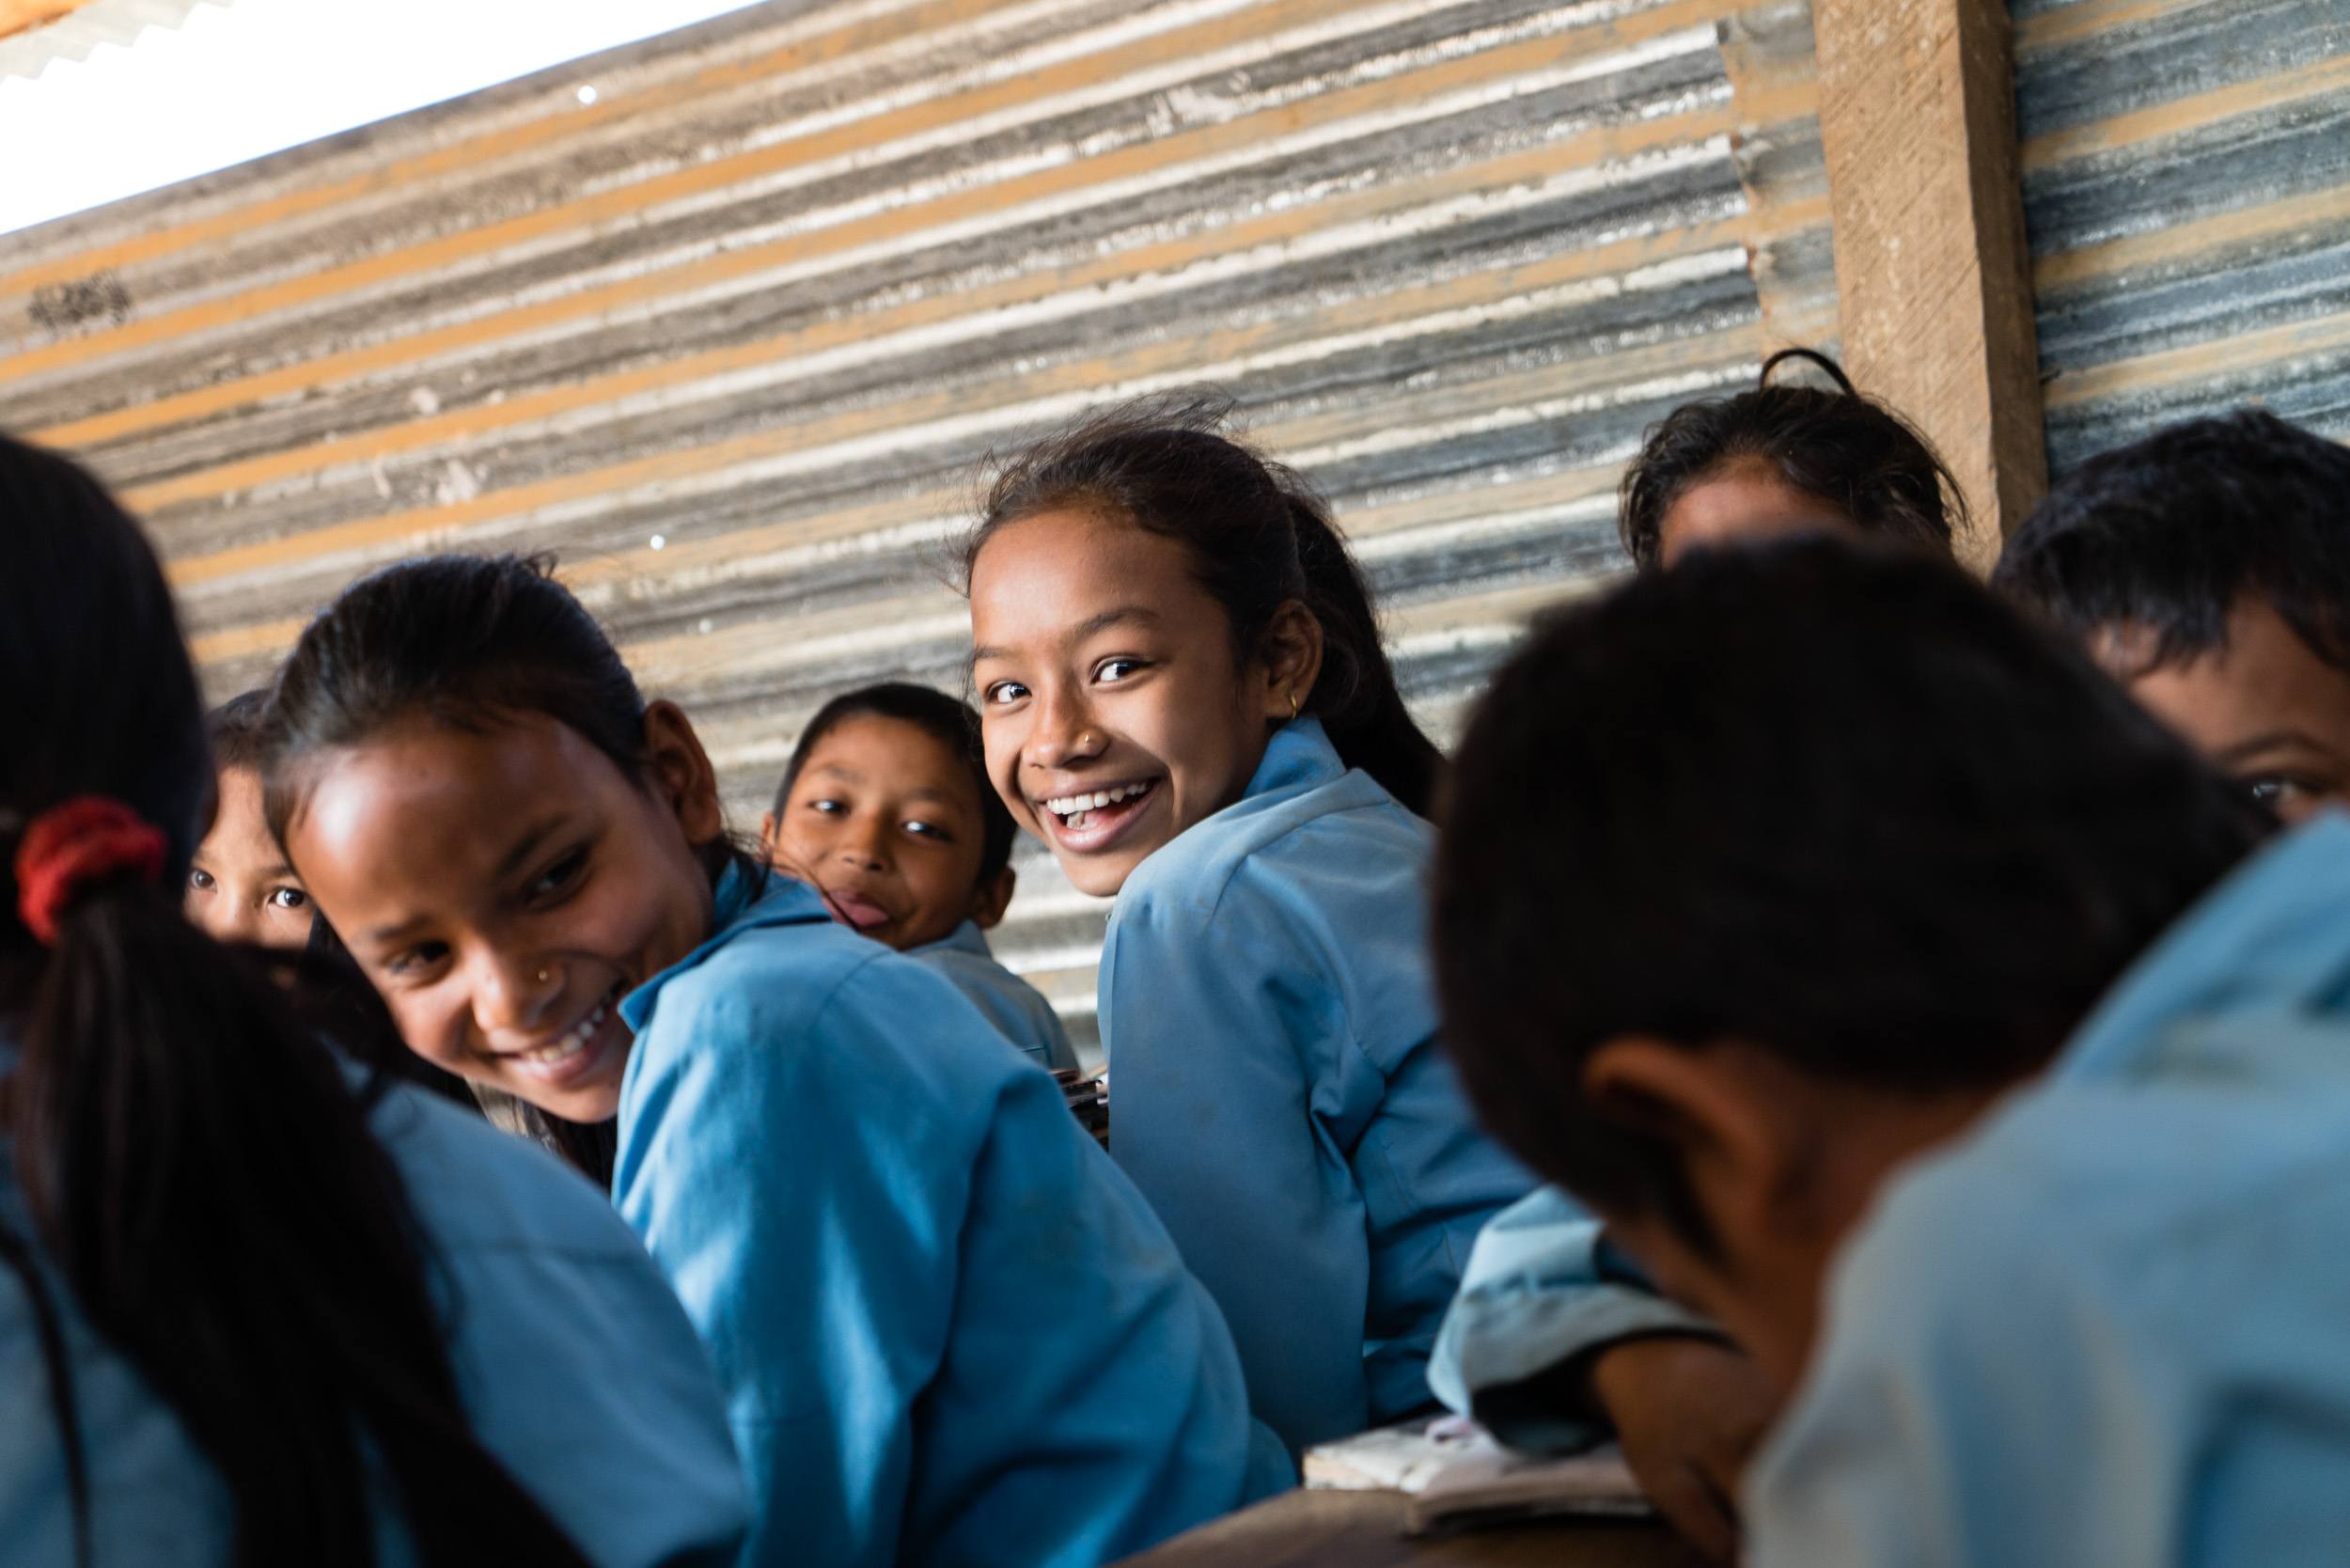 Even under difficult conditions in the temporary school these students are happy to have a place to learn.